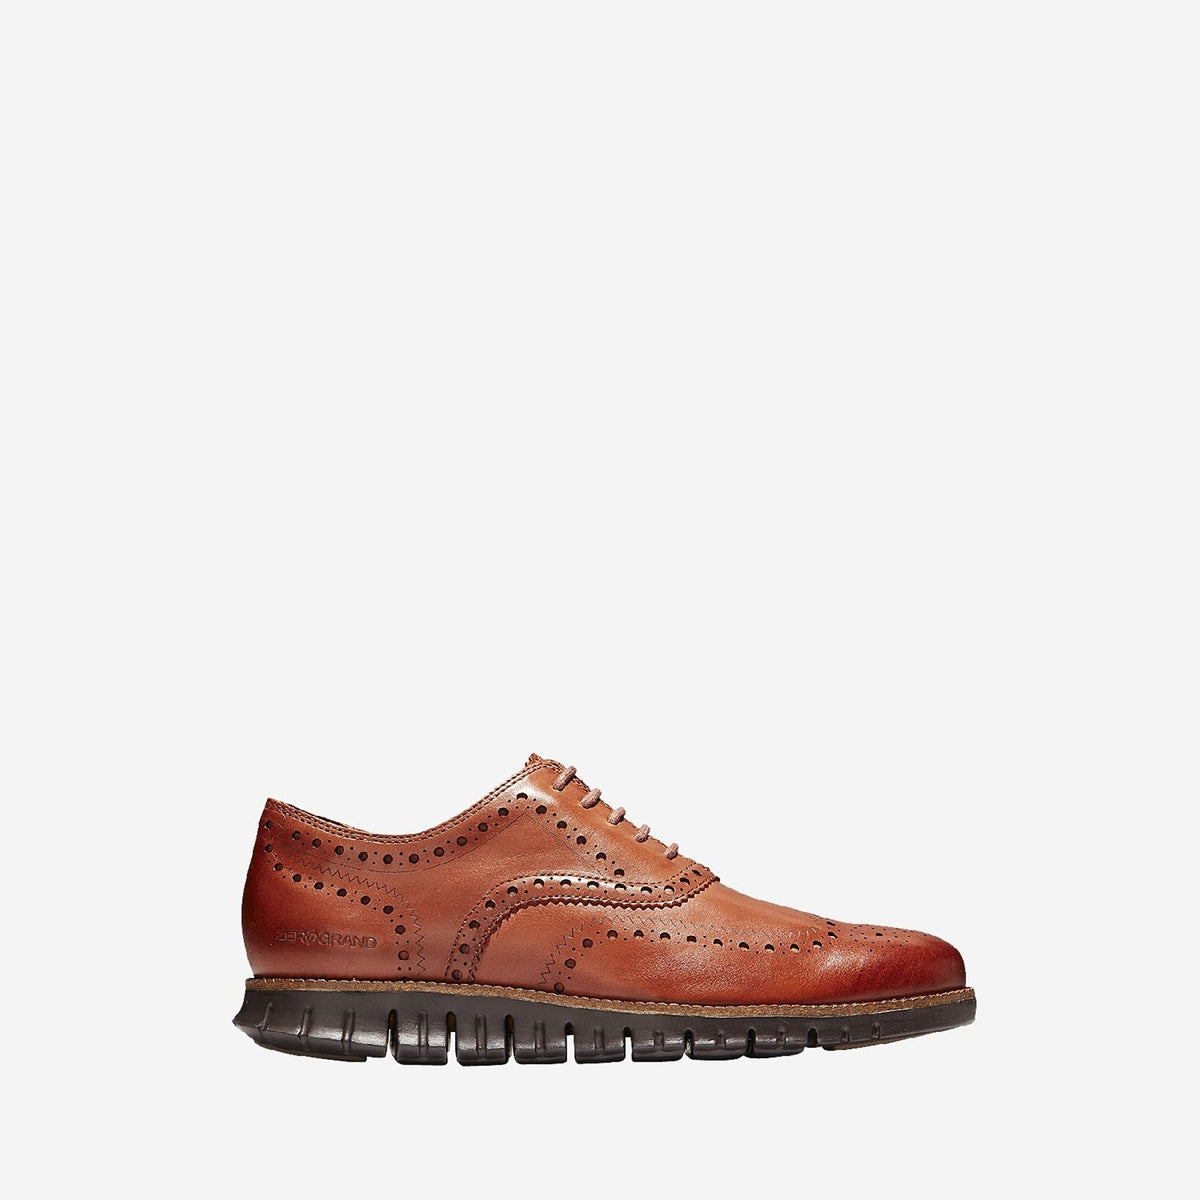 Men's ZERØGRAND Wingtip Oxford Leather British Tan